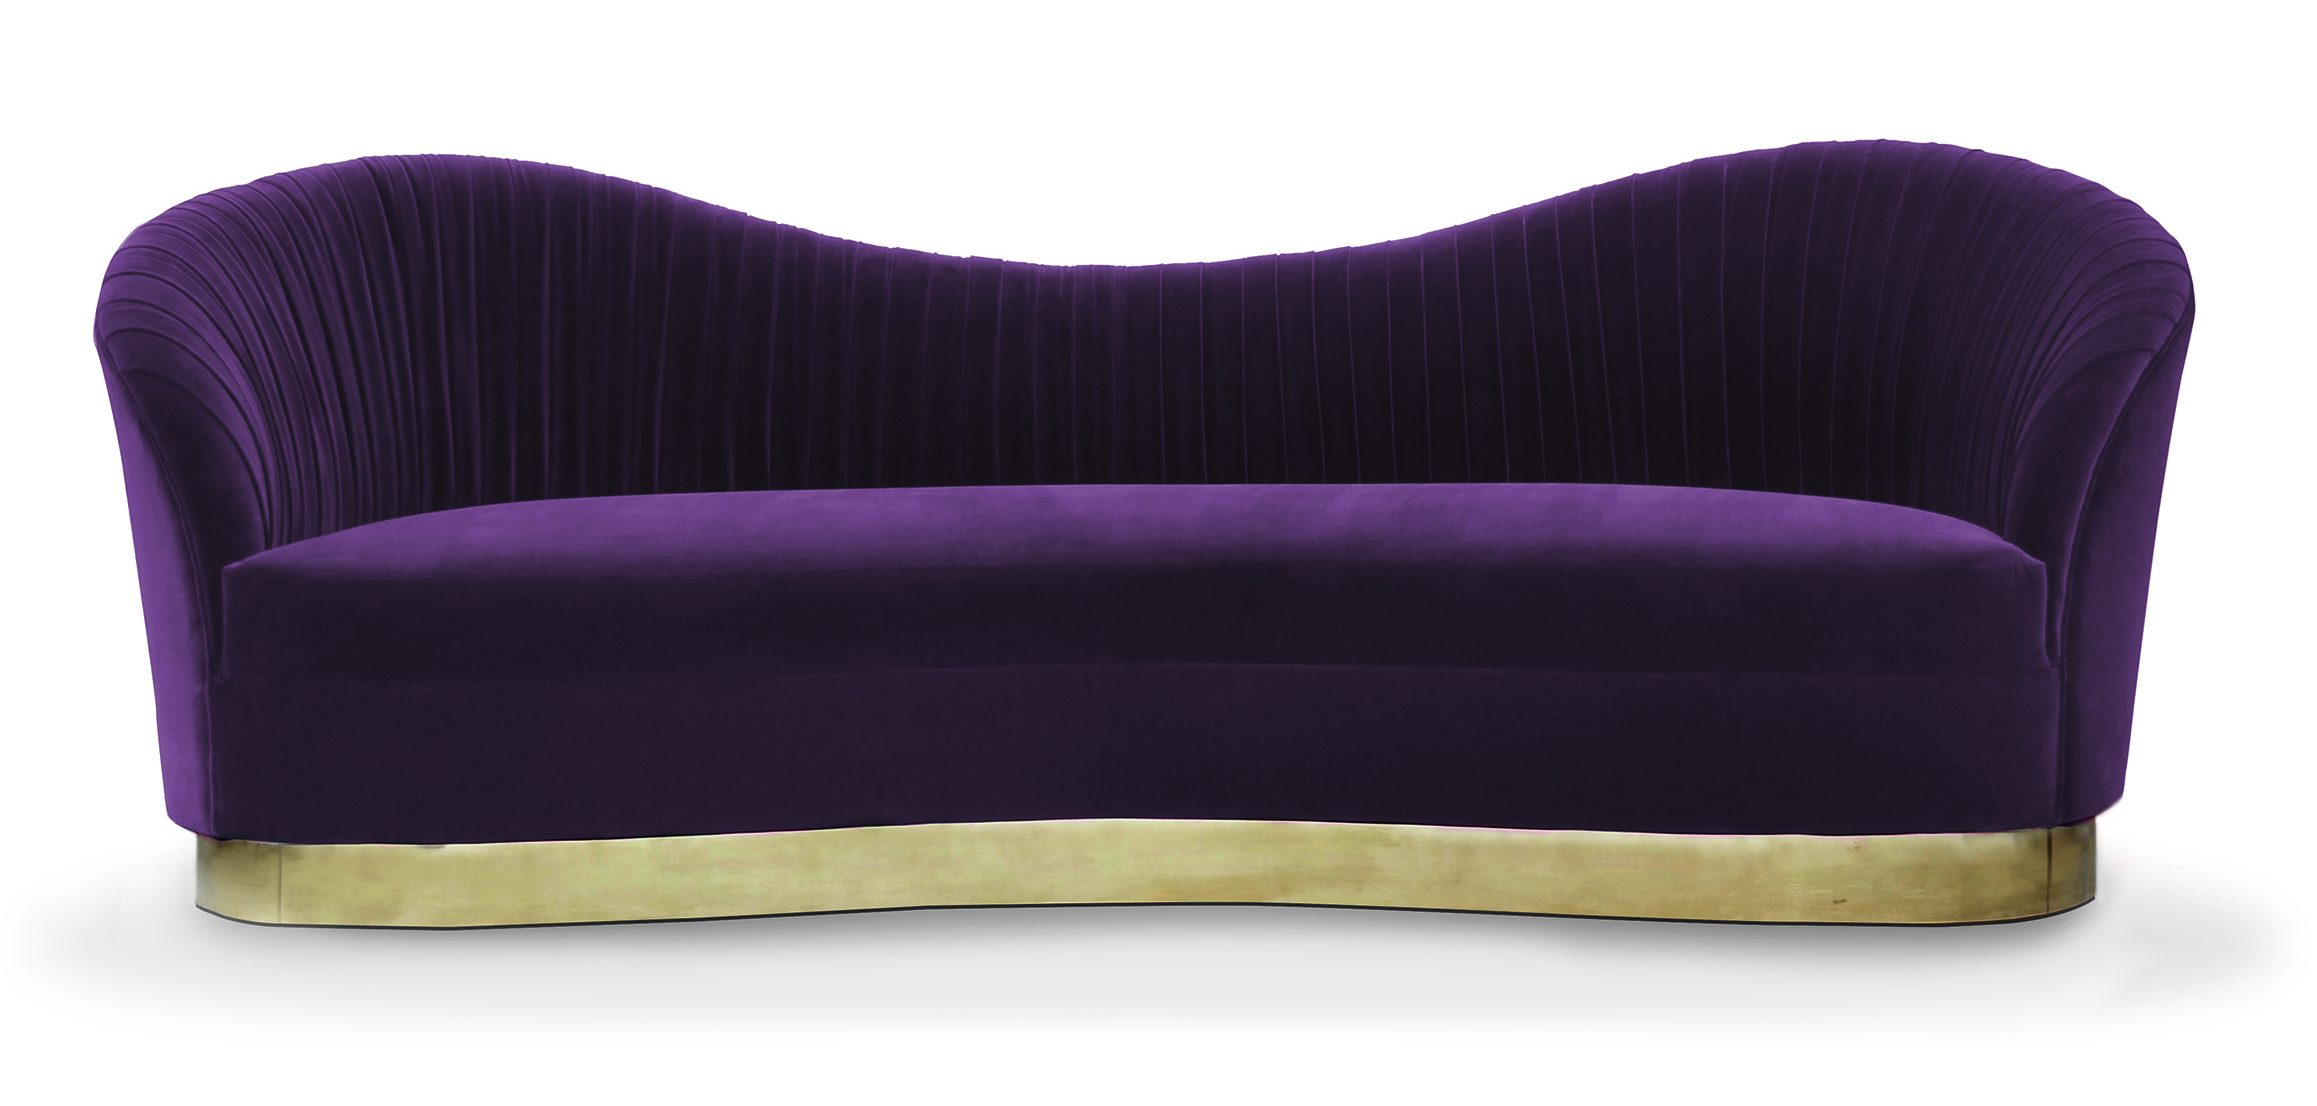 Interior Design Trends 2018 - Purple sofas - Color of the Year 2018 - Kelly Sofa by KOKET - curved sofas - ruched sofas - sofas with brass base - luxury furniture - sexy furniture